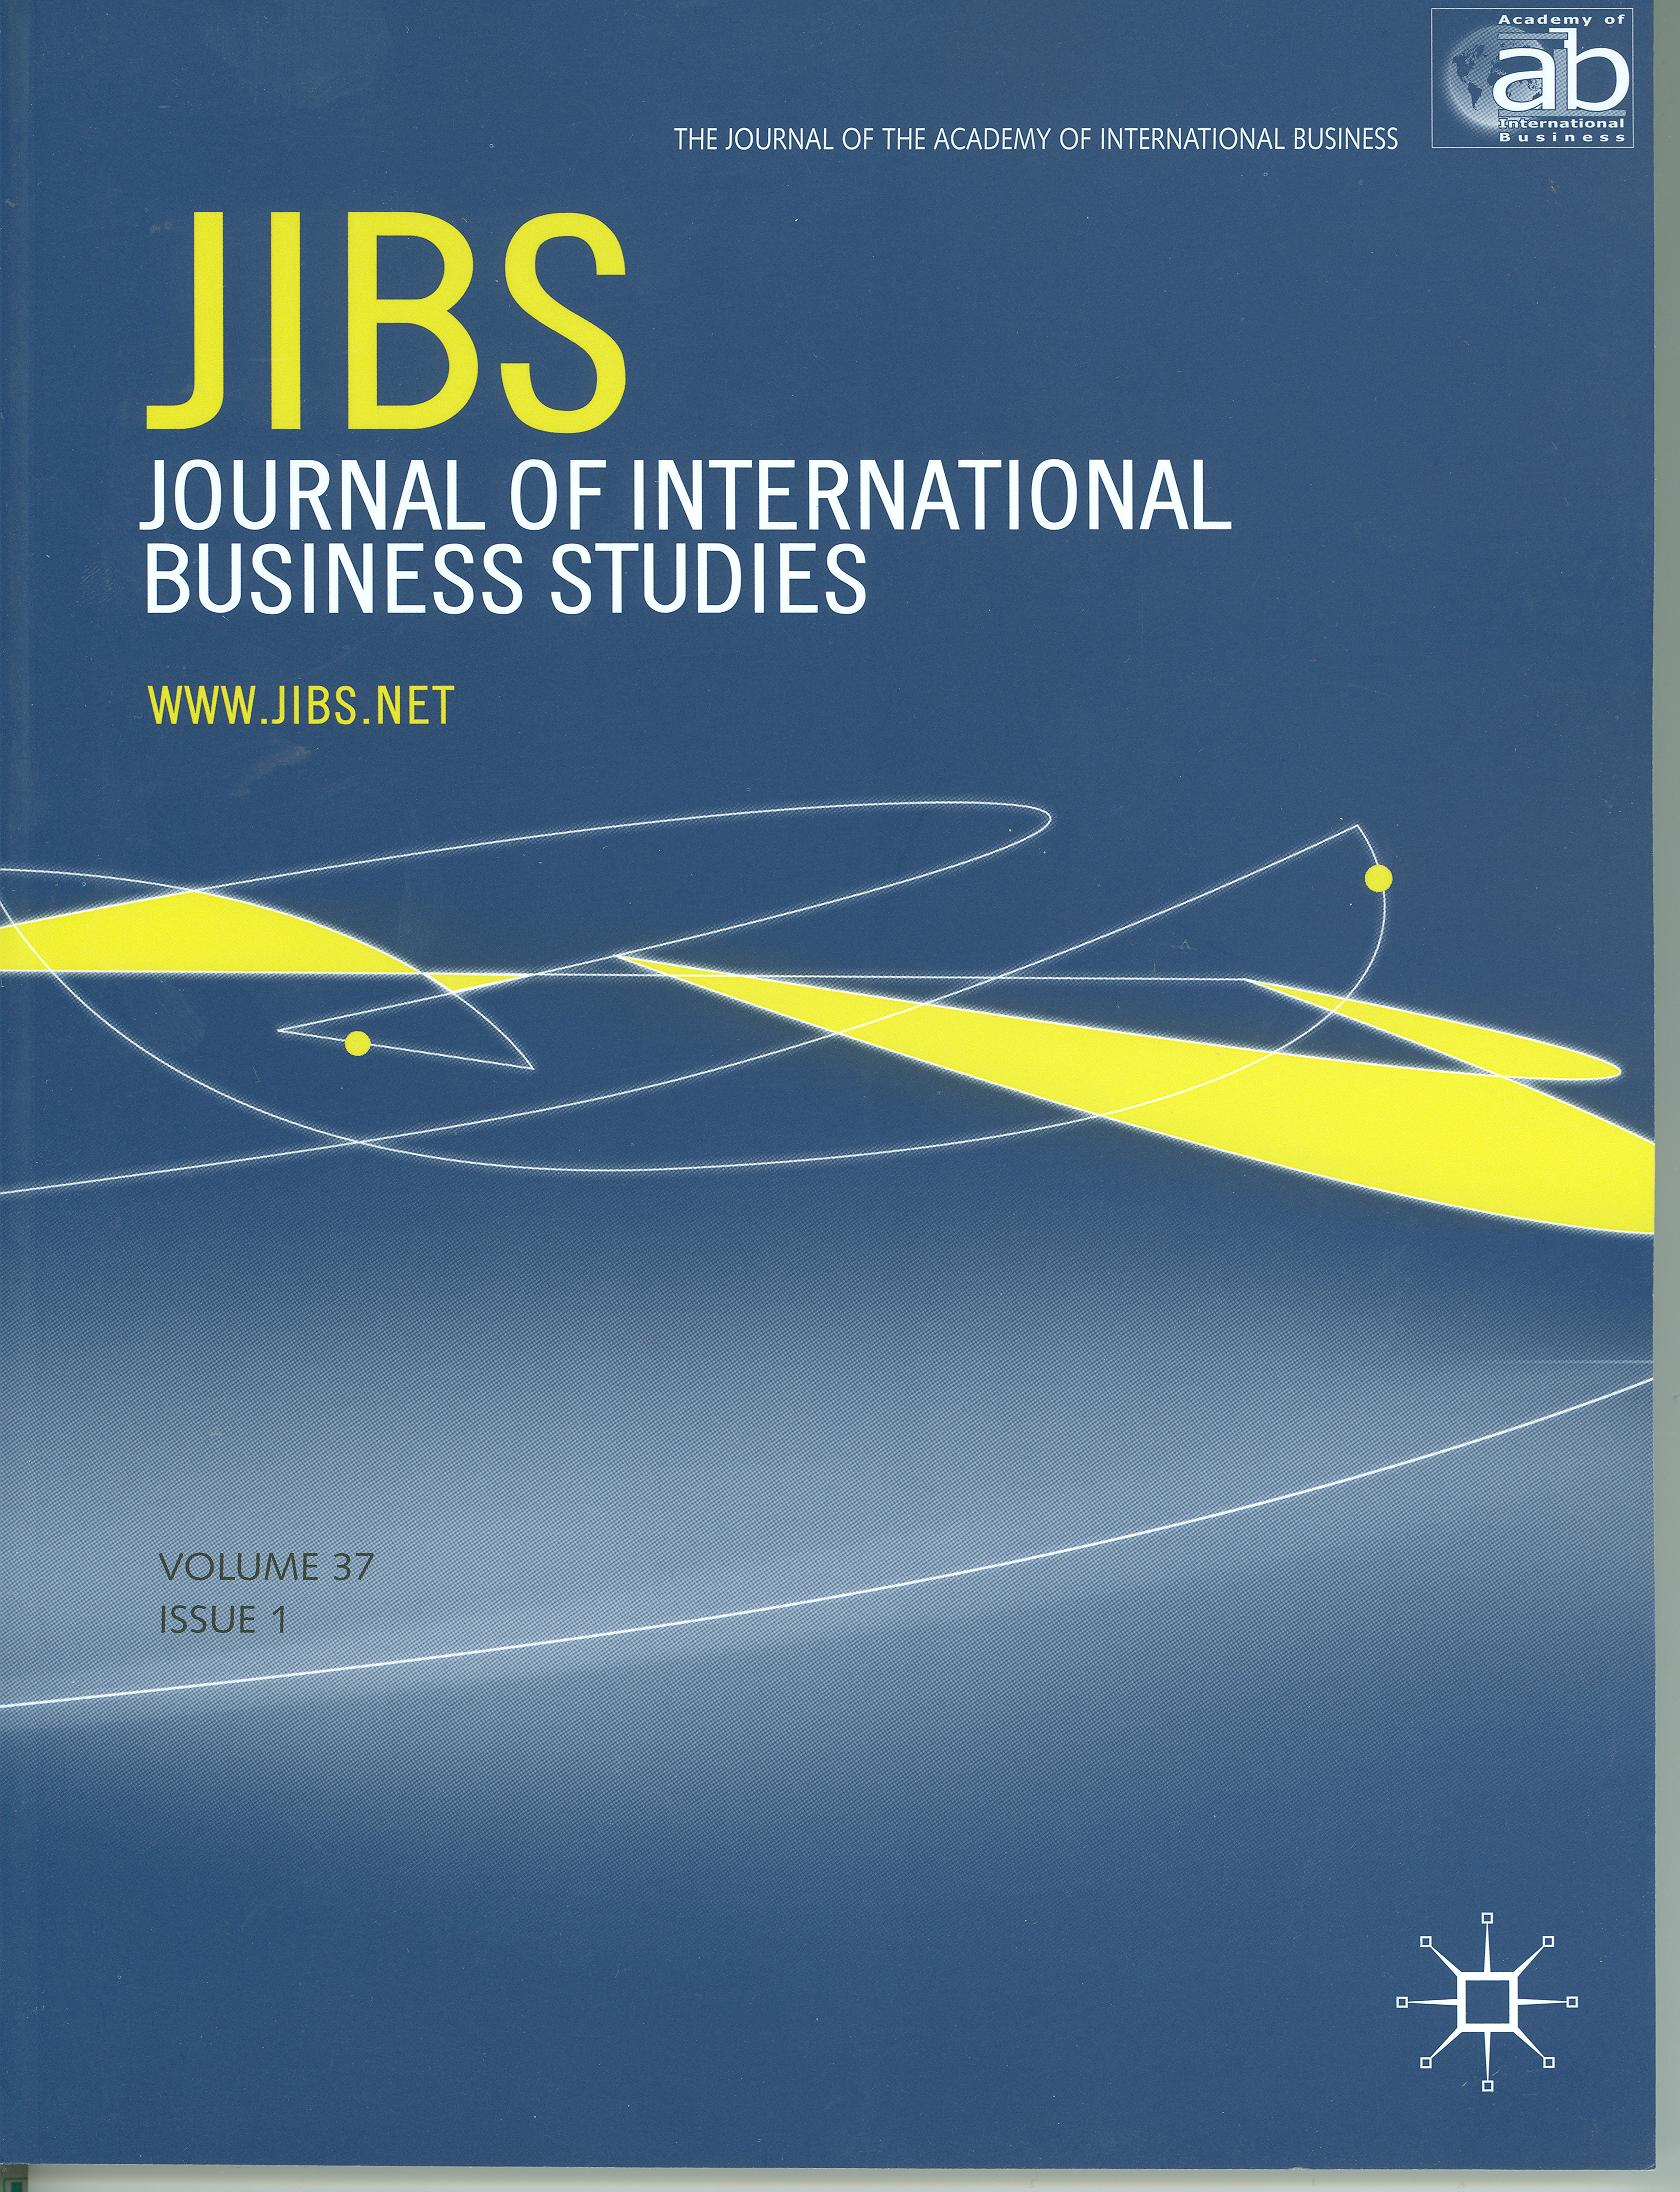 Cover design from a 2008 issue of JIBS